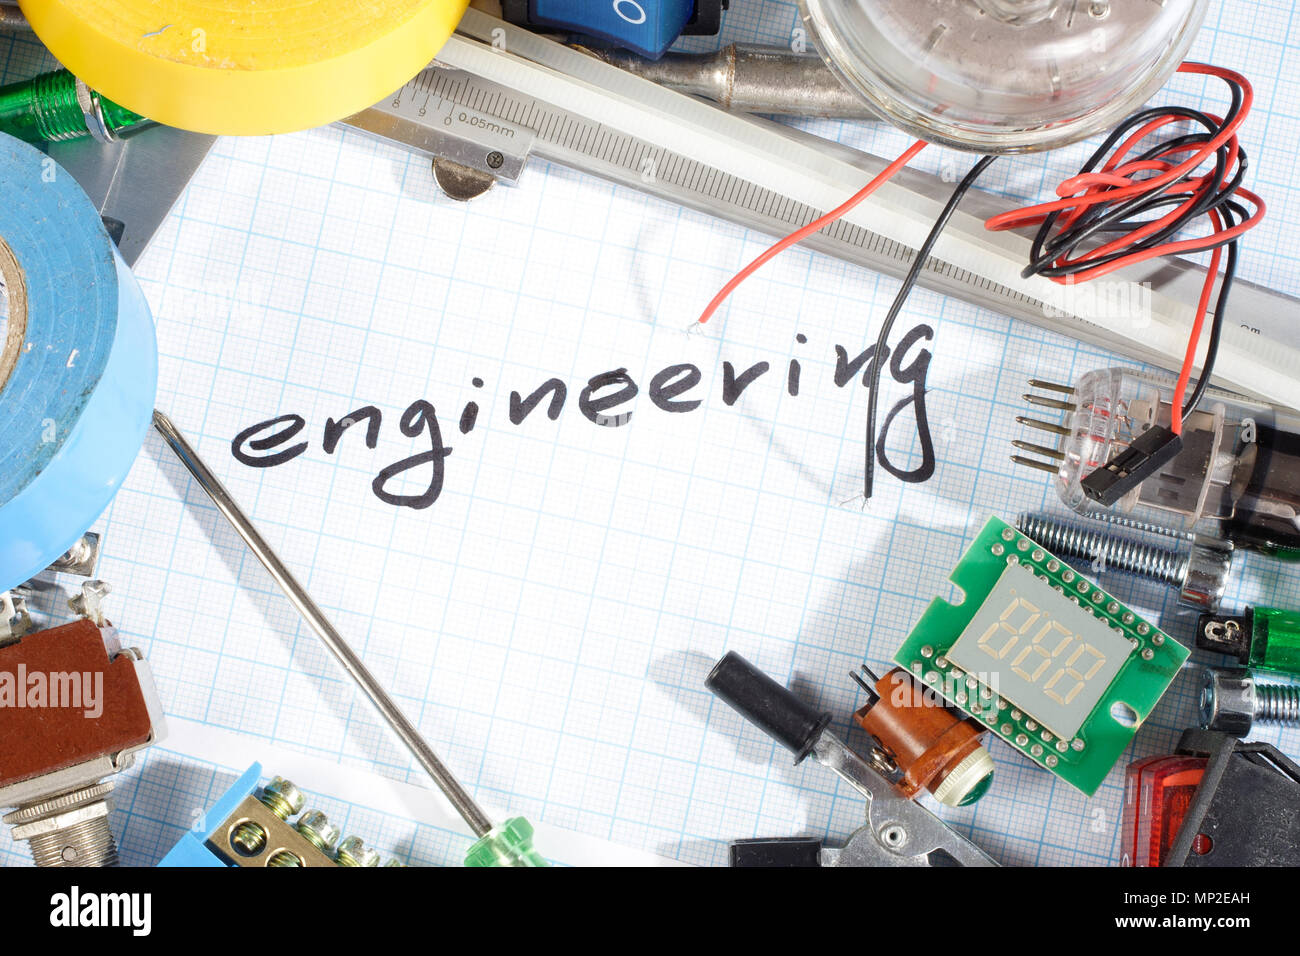 engineering radio electronic parts on graph paper background